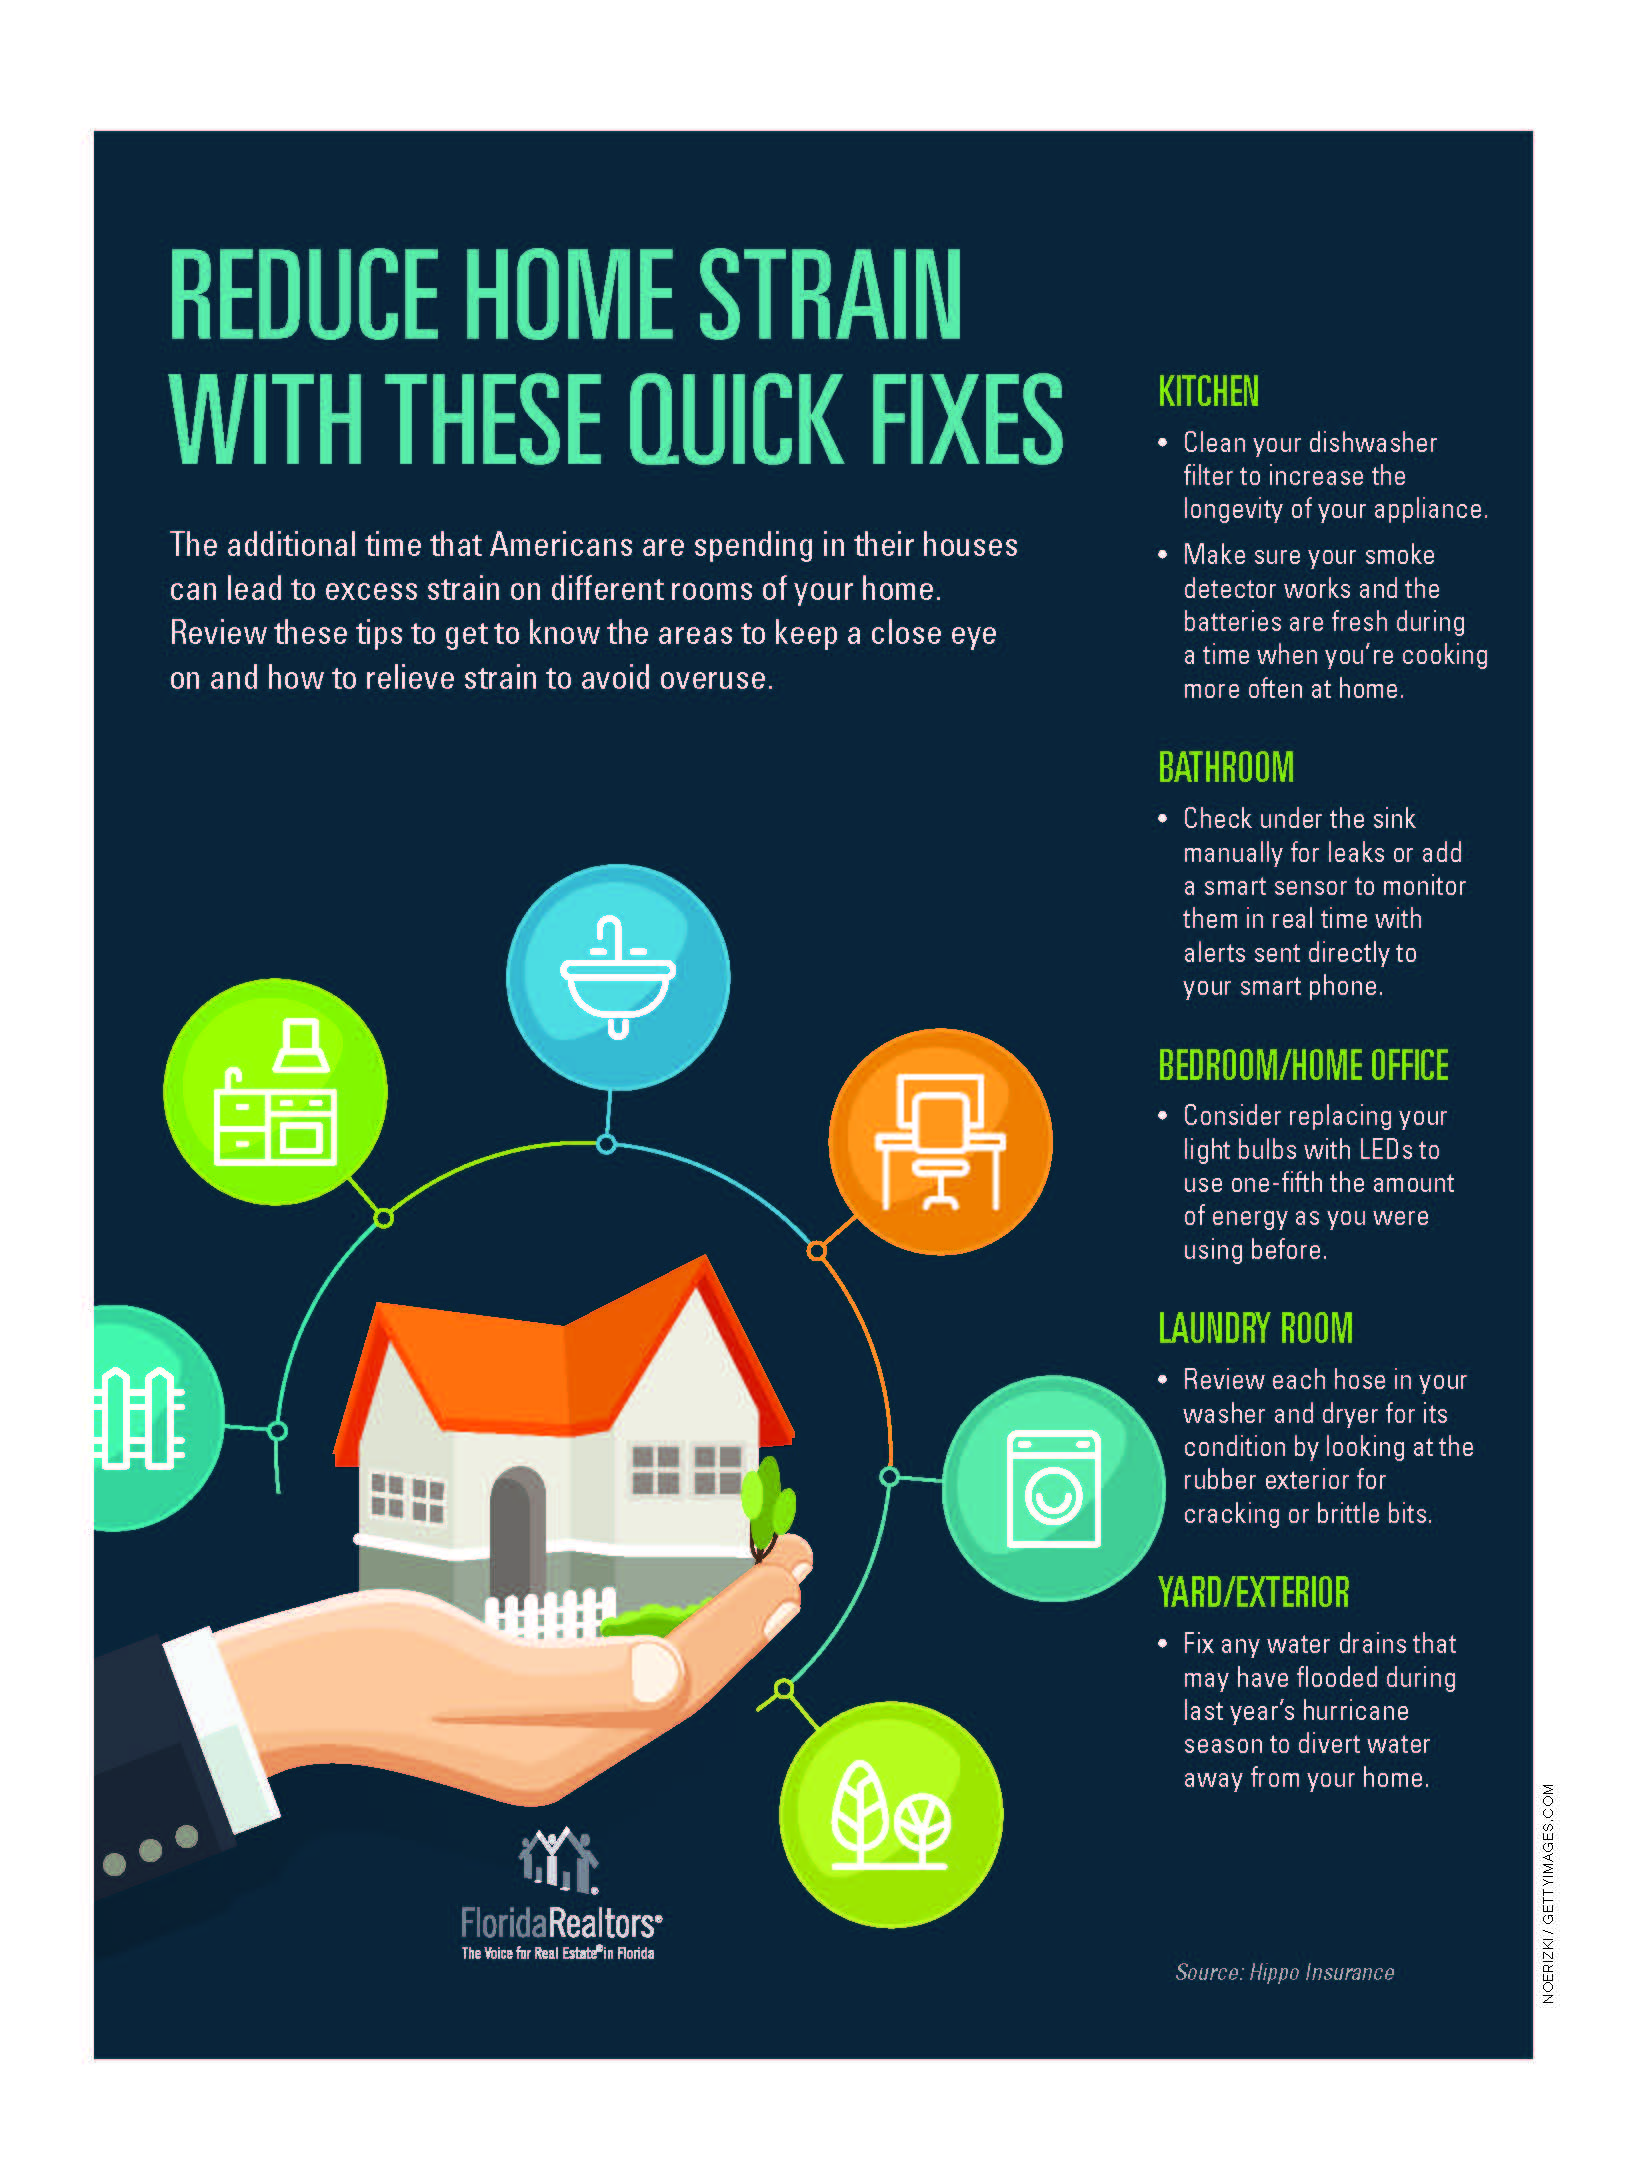 Quick Fixes to reduce home strain infographic